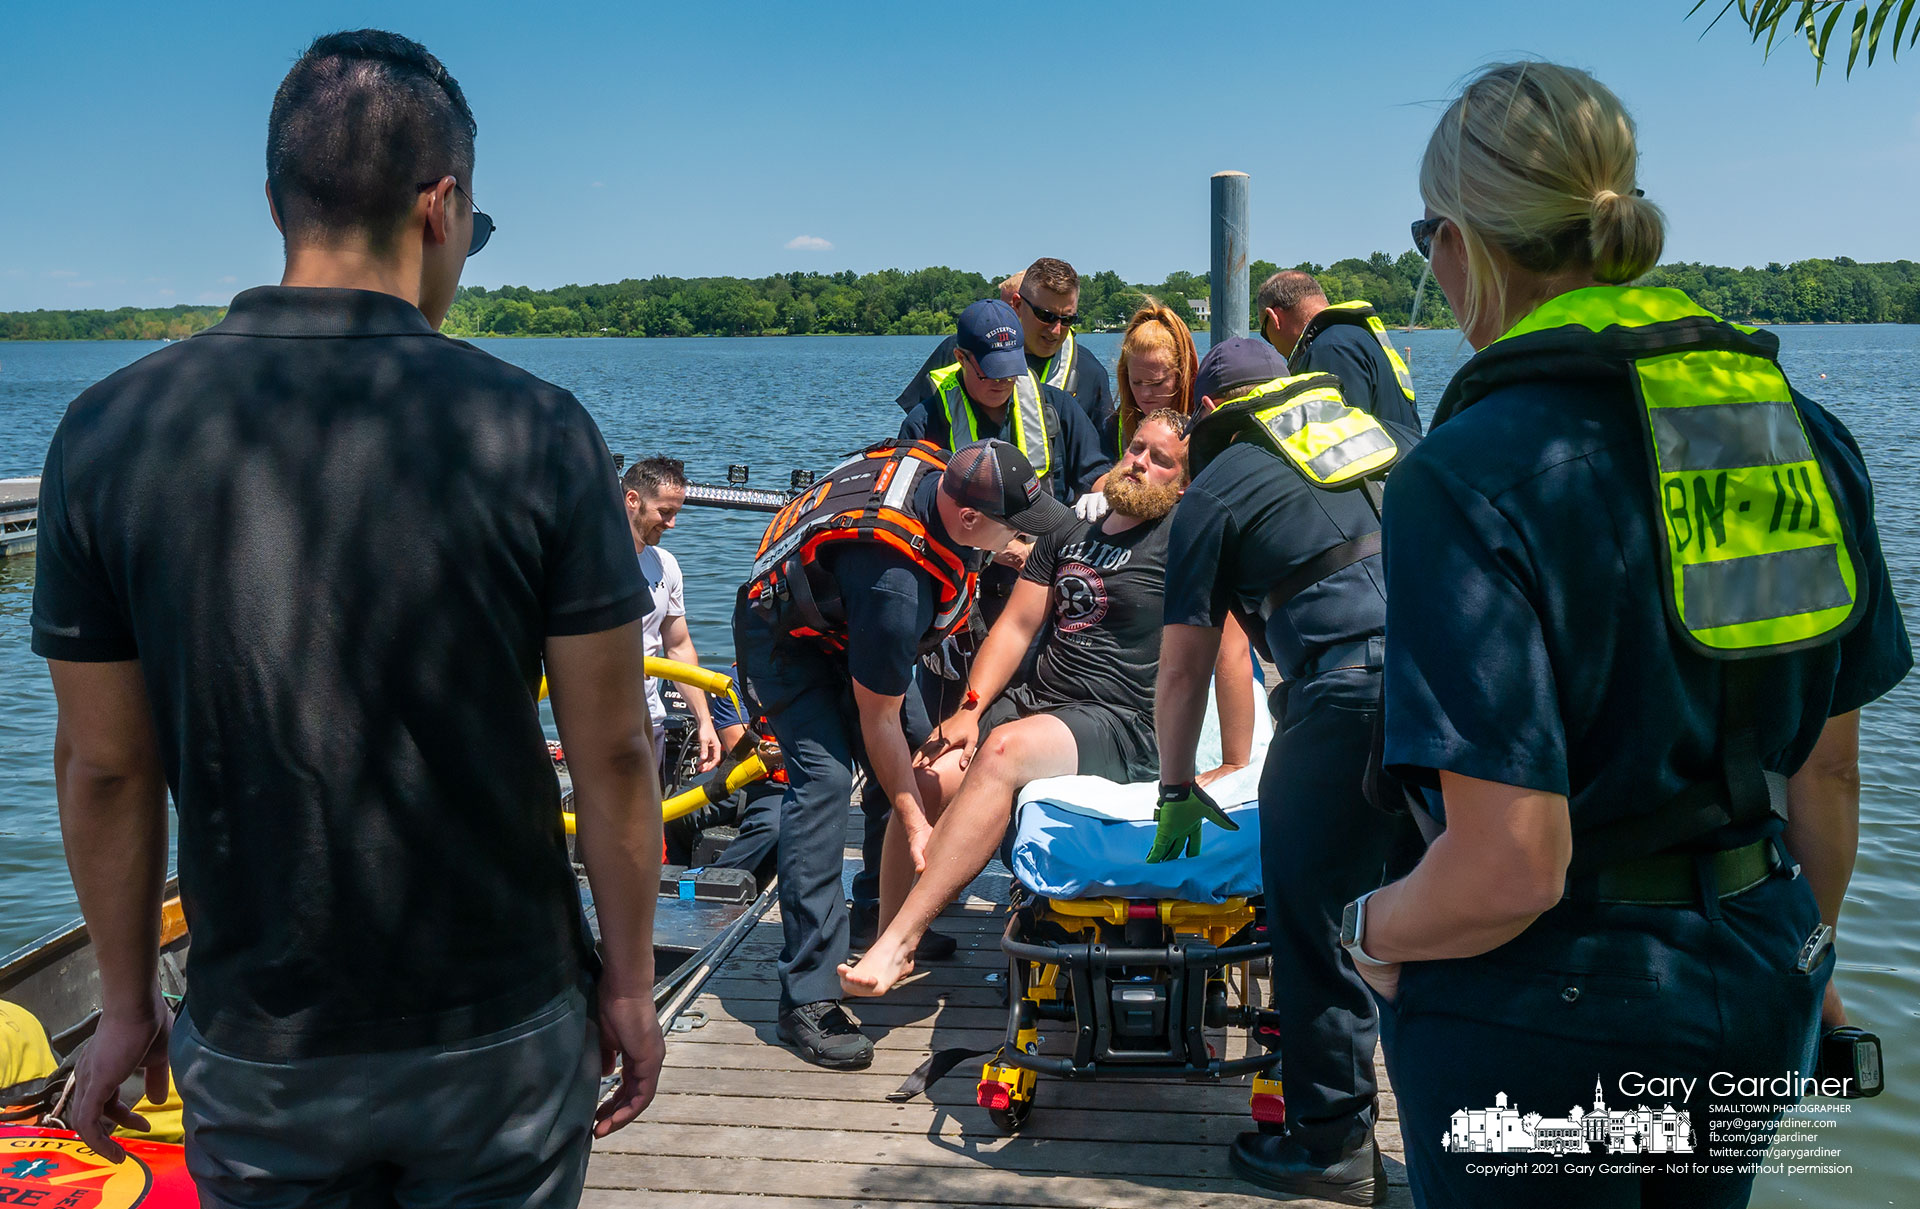 Firefighters move another firefighter to a gurney sitting on the dock at Red Bank Marina under the watch of a doctor and deputy fire chief during water rescue training on Hoover Wednesday. My Final Photo for Aug. 4, 2021.